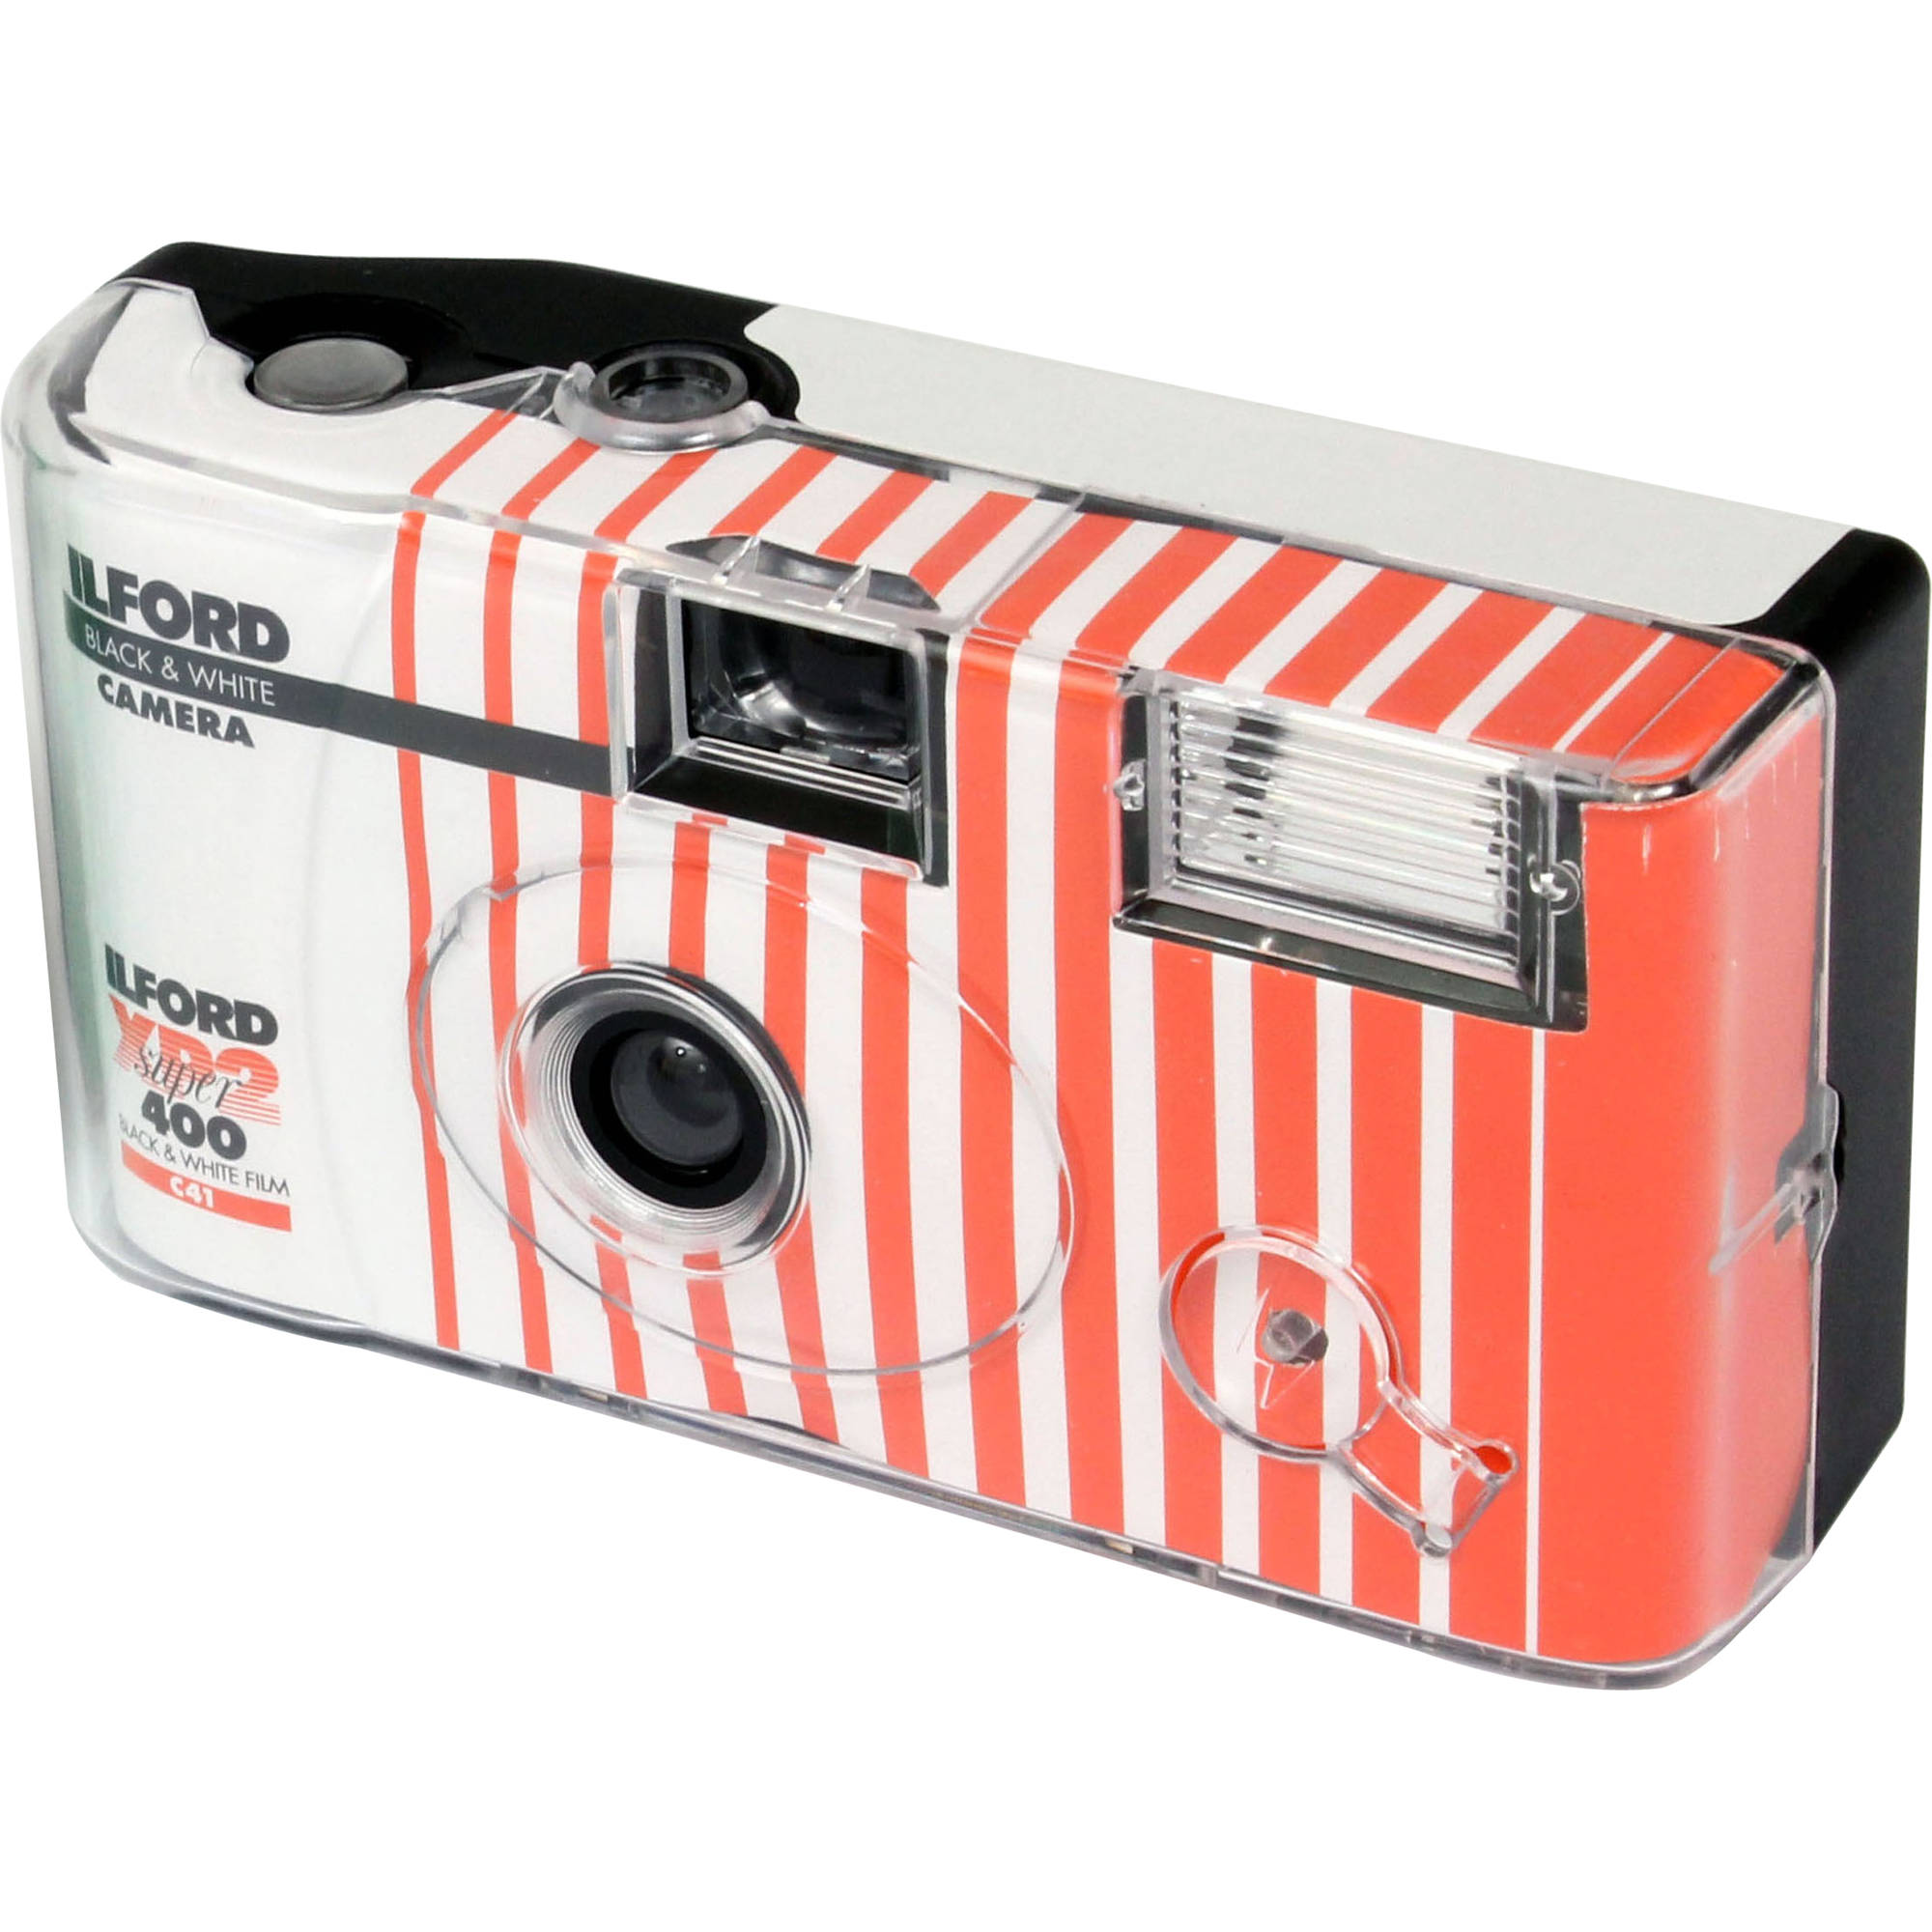 Ilford Xp2 Super Single Use Camera With 27 Exposures 1174186 Bh Flash Circuit Further Disposable